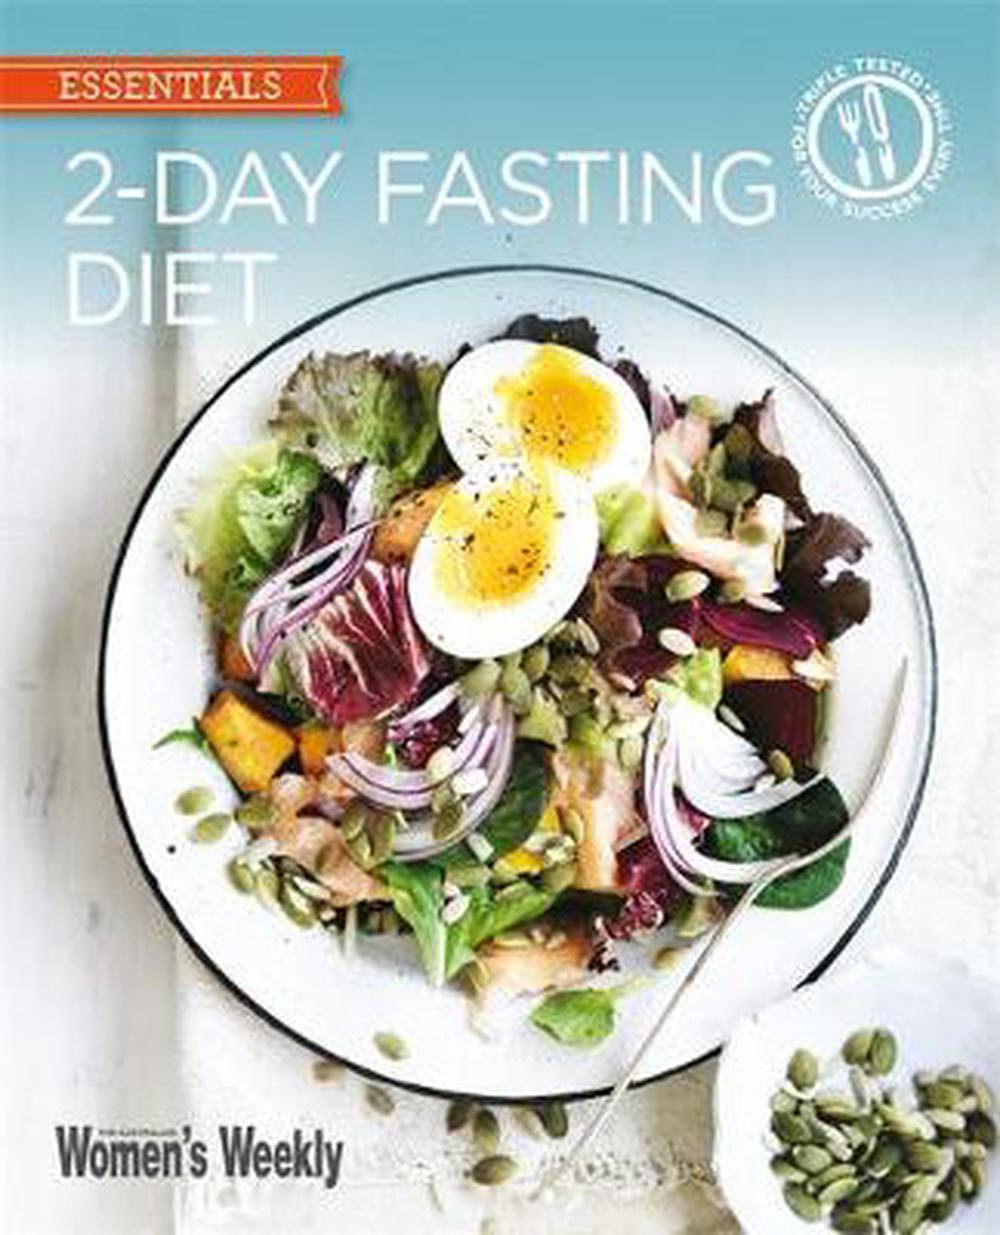 2-Day Fasting Diet: Delicious, satisfying recipes for fast days (The Australian Women's Weekly: New Essentials)